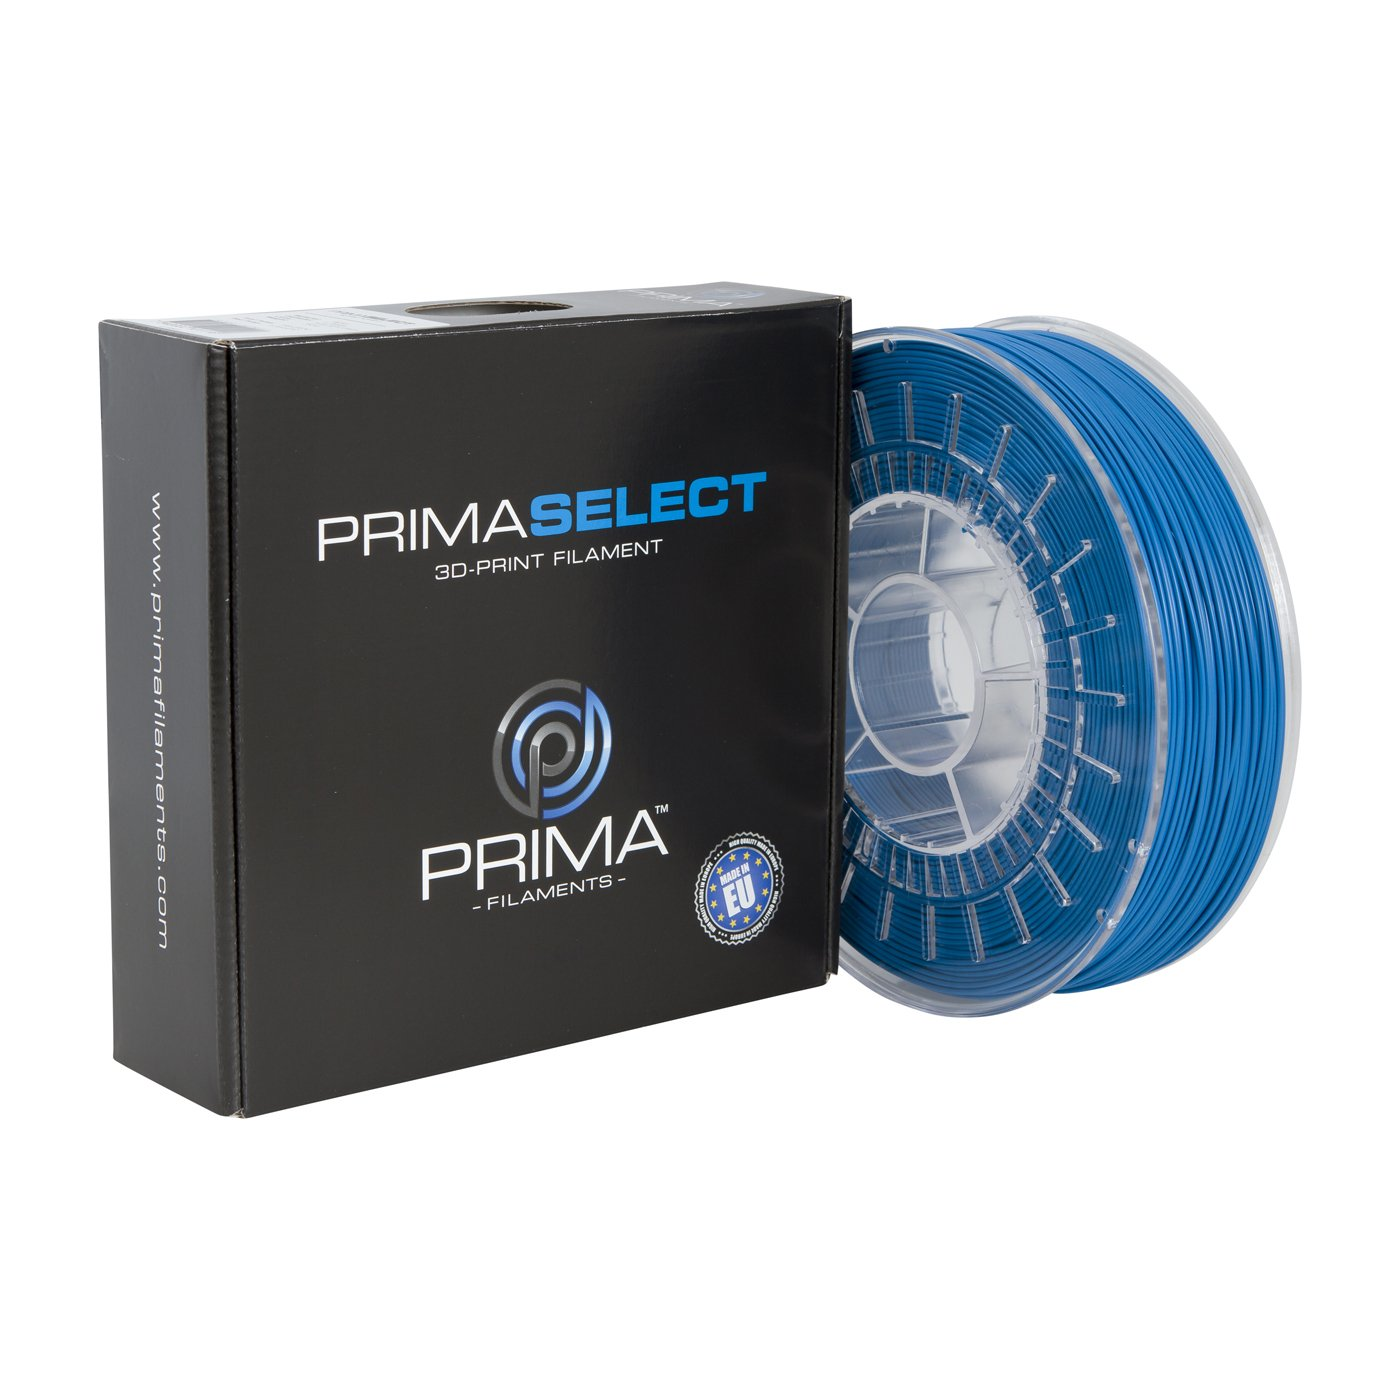 Prima Filaments PS-ABS-285-0750-DG PrimaSelect ABS Filament, 2.85 mm, 750 g, Dark Grey